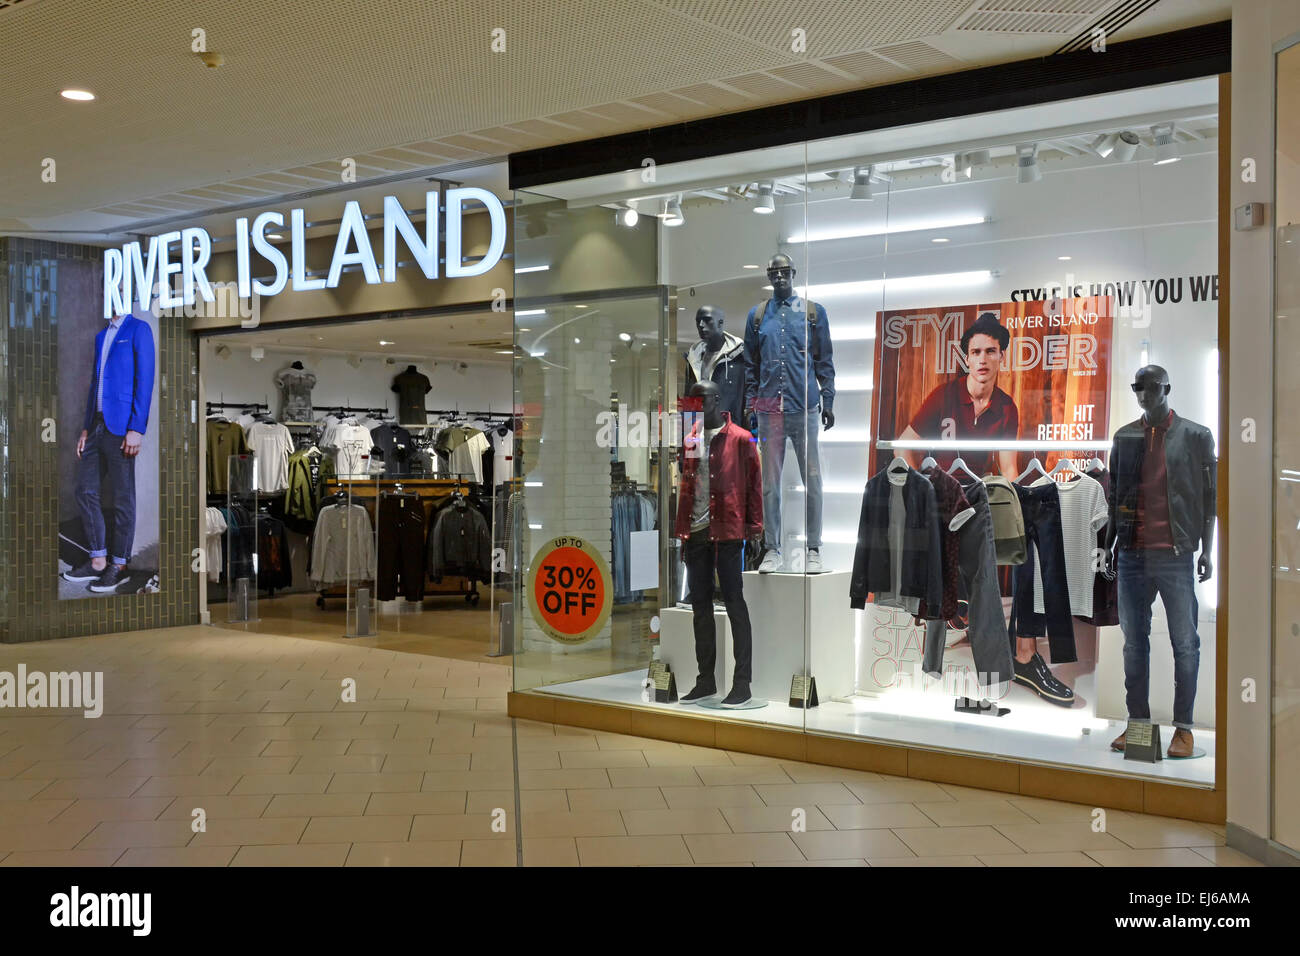 River Island shop windows in Lakeside shopping mall Thurrock Essex England UK Stock Photo